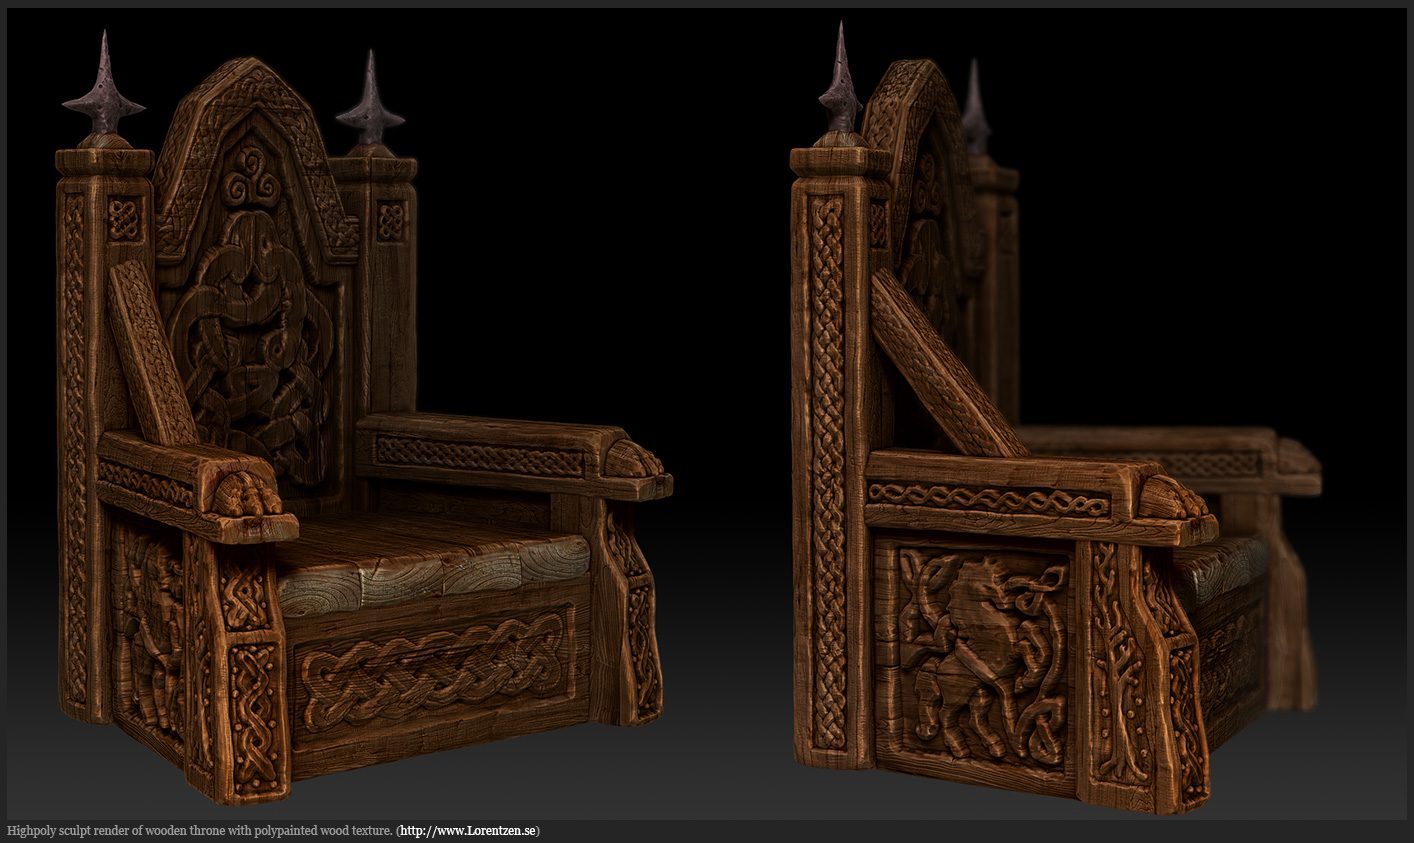 20121016_throne_render_w_c.jpg